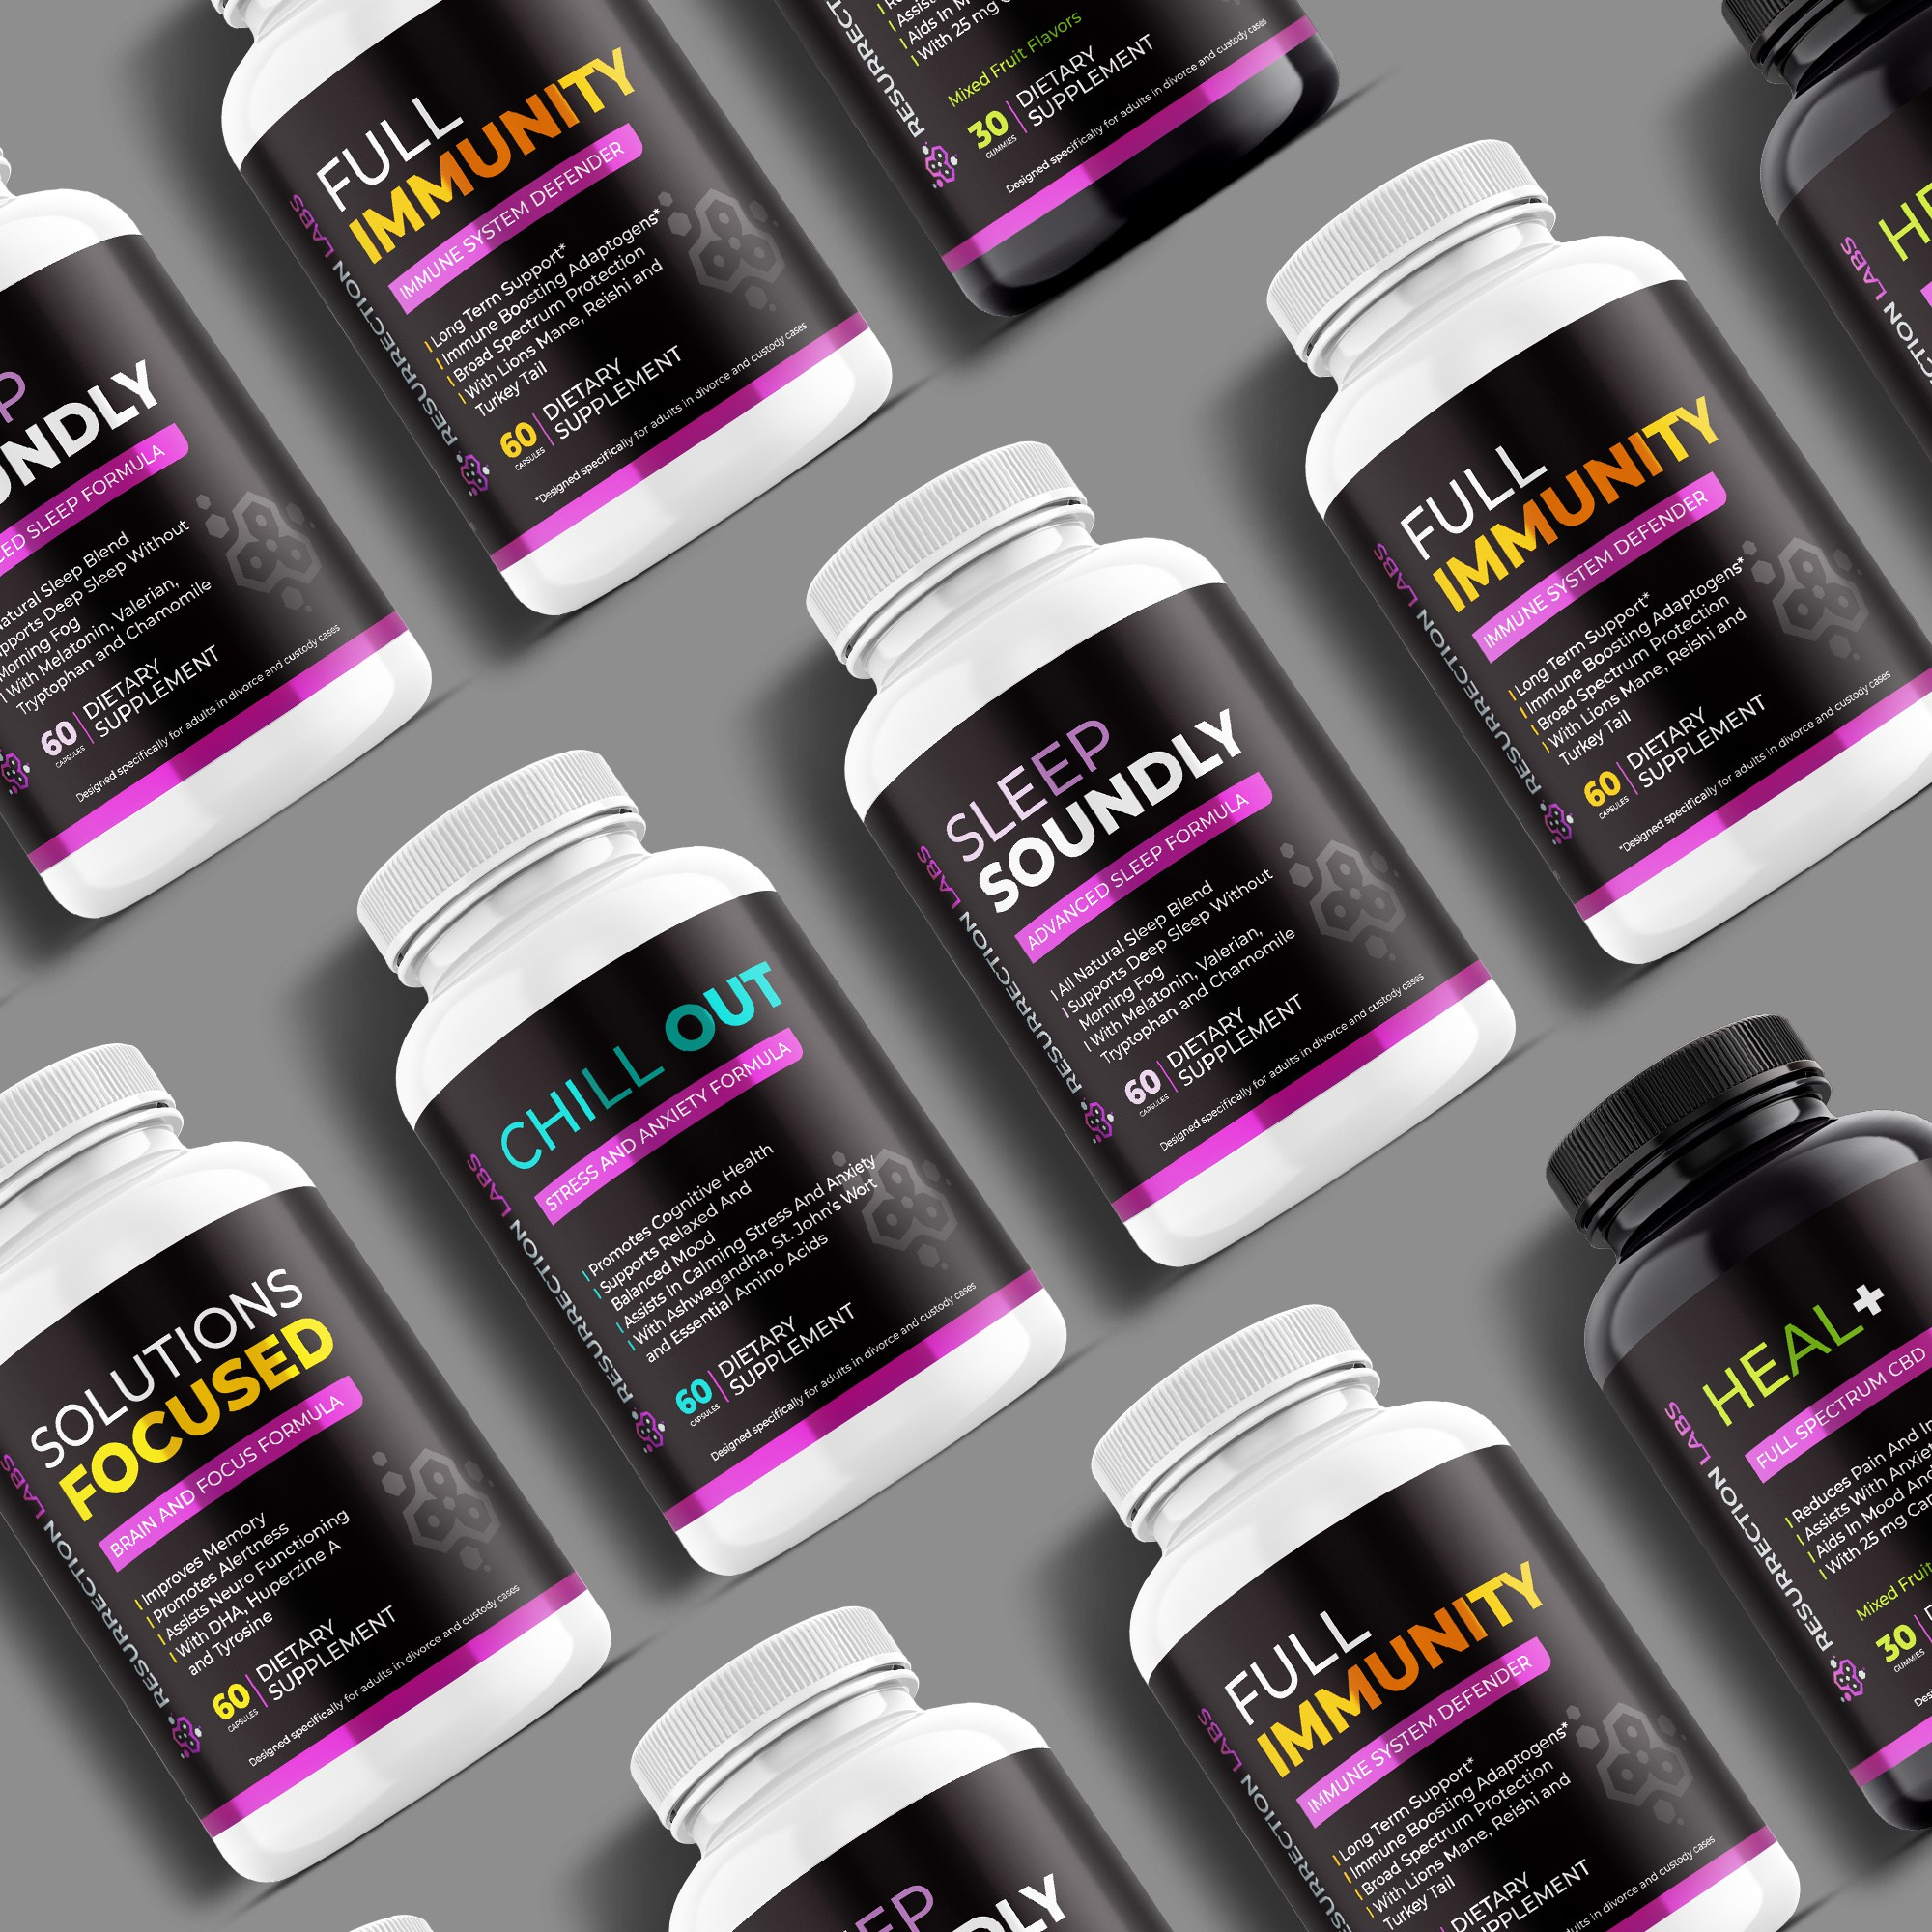 Product labels for a company selling health supplements to people going through divorce.